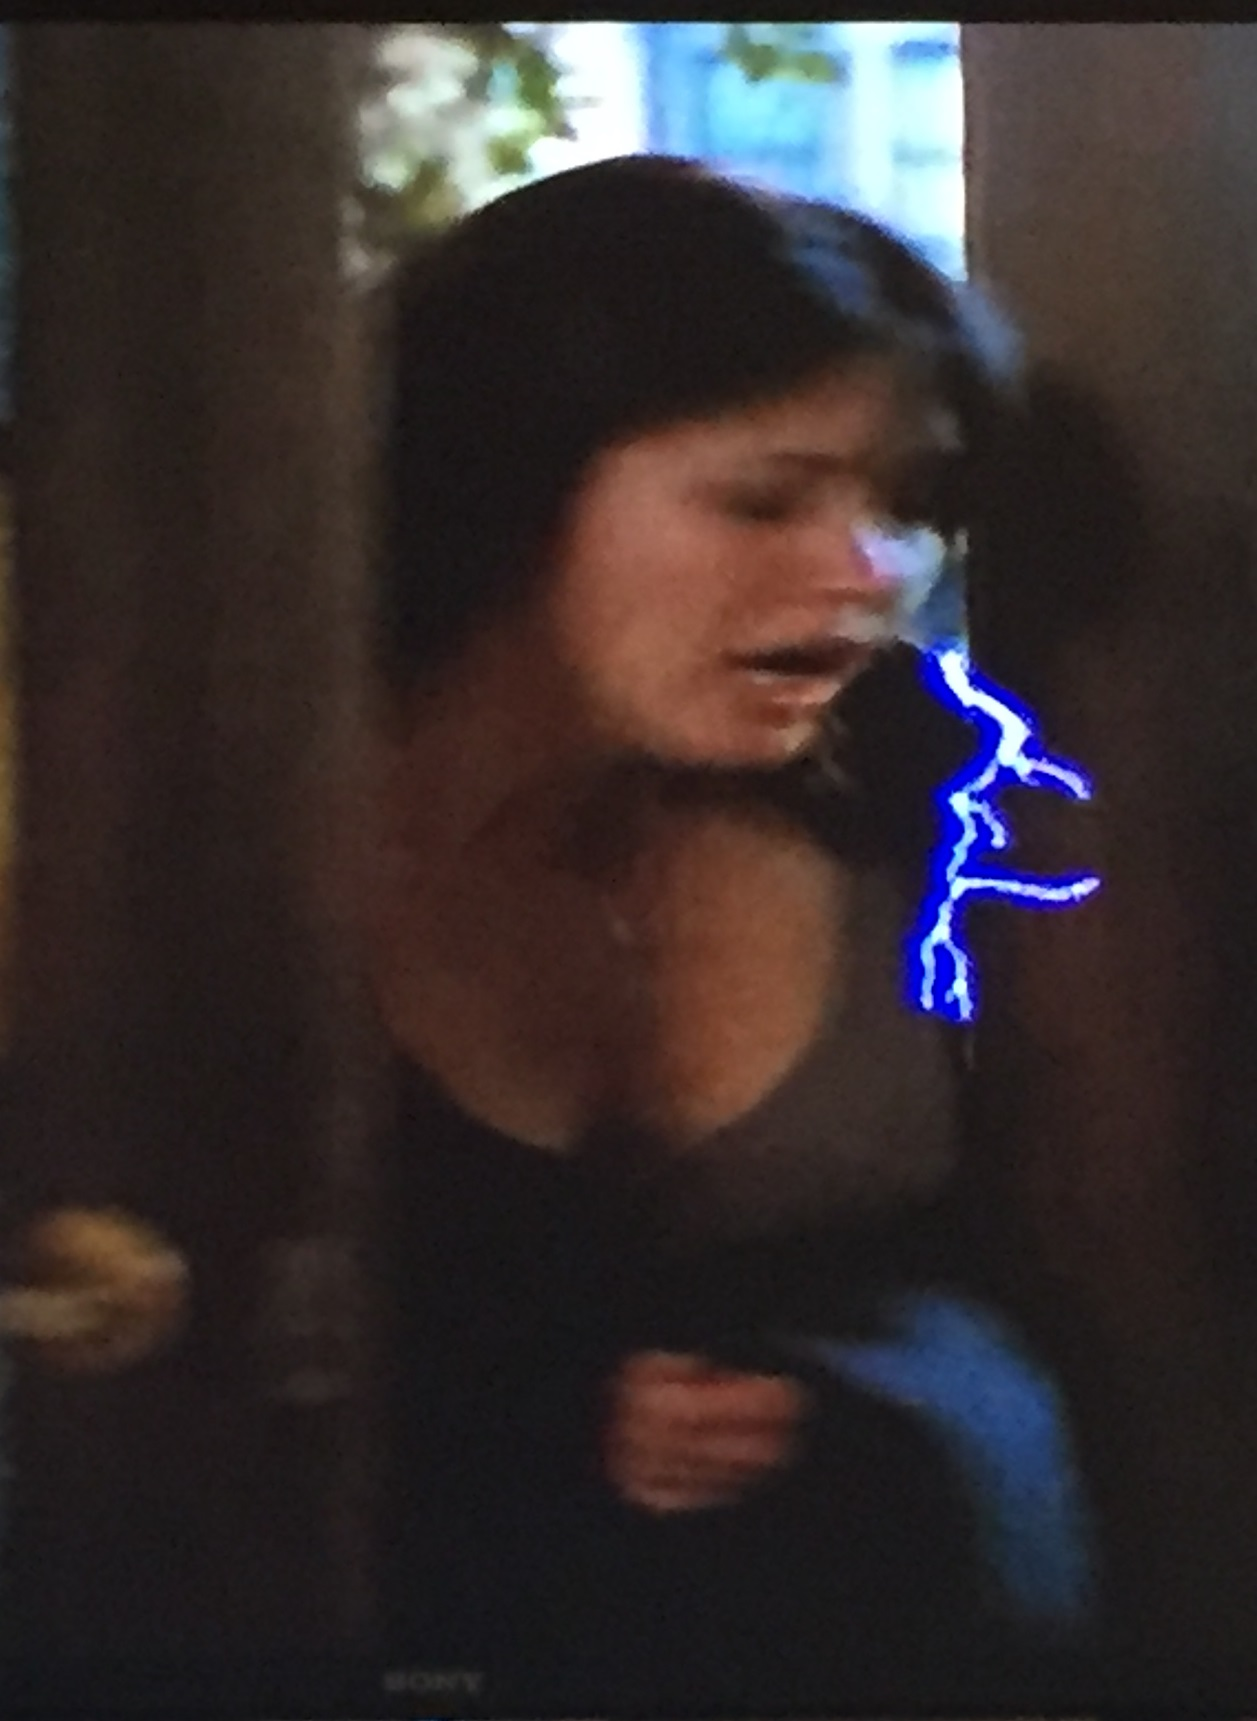 Prue gets shocked as she comes in the door.